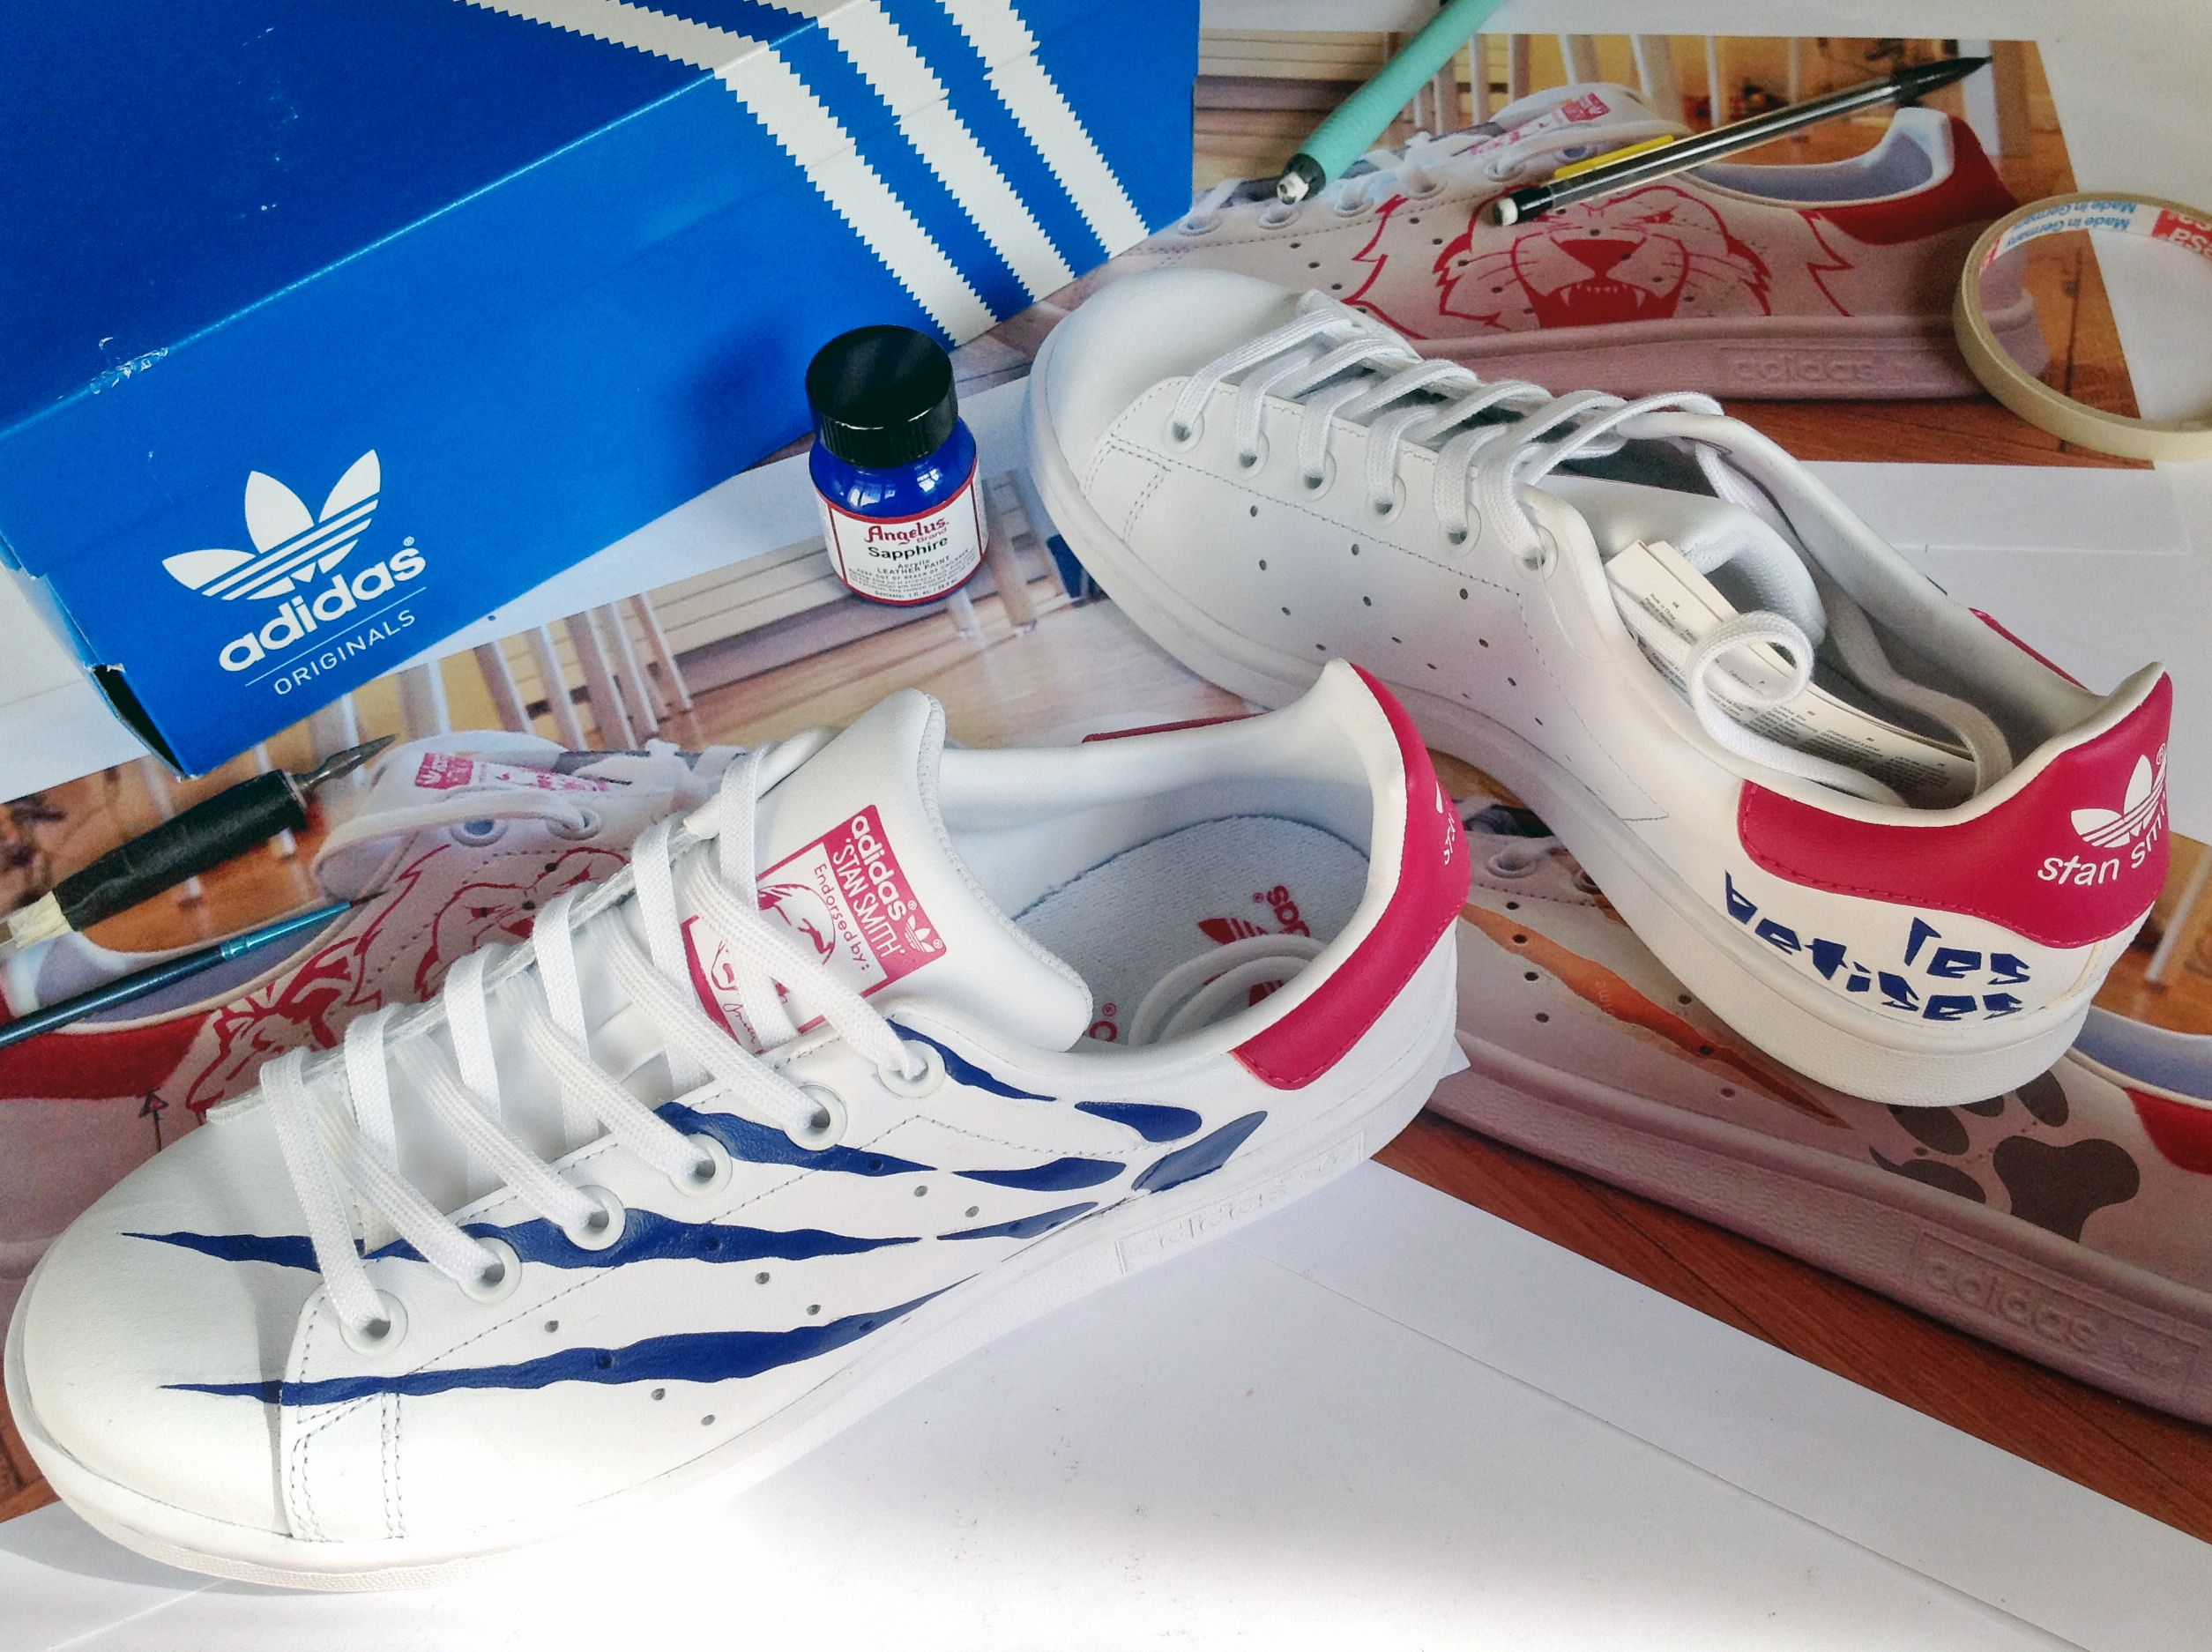 LbphandmadeuniquecreationStan Customstansmith Customstansmith En 2019 By zSpLGMqUV